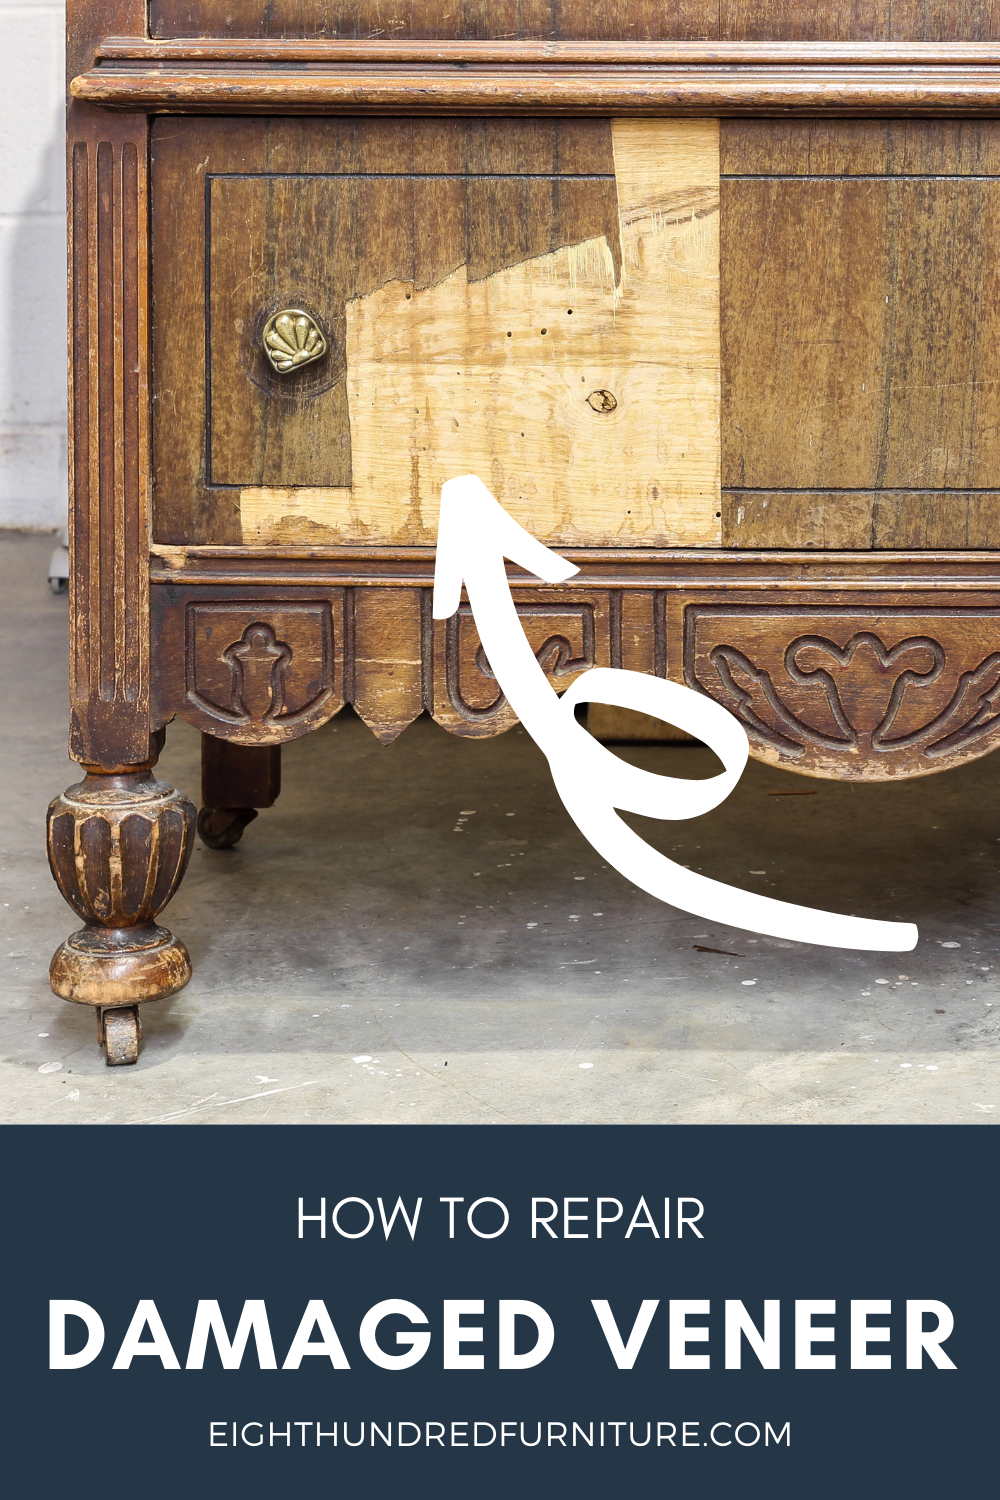 How to Repair Damaged Veneer